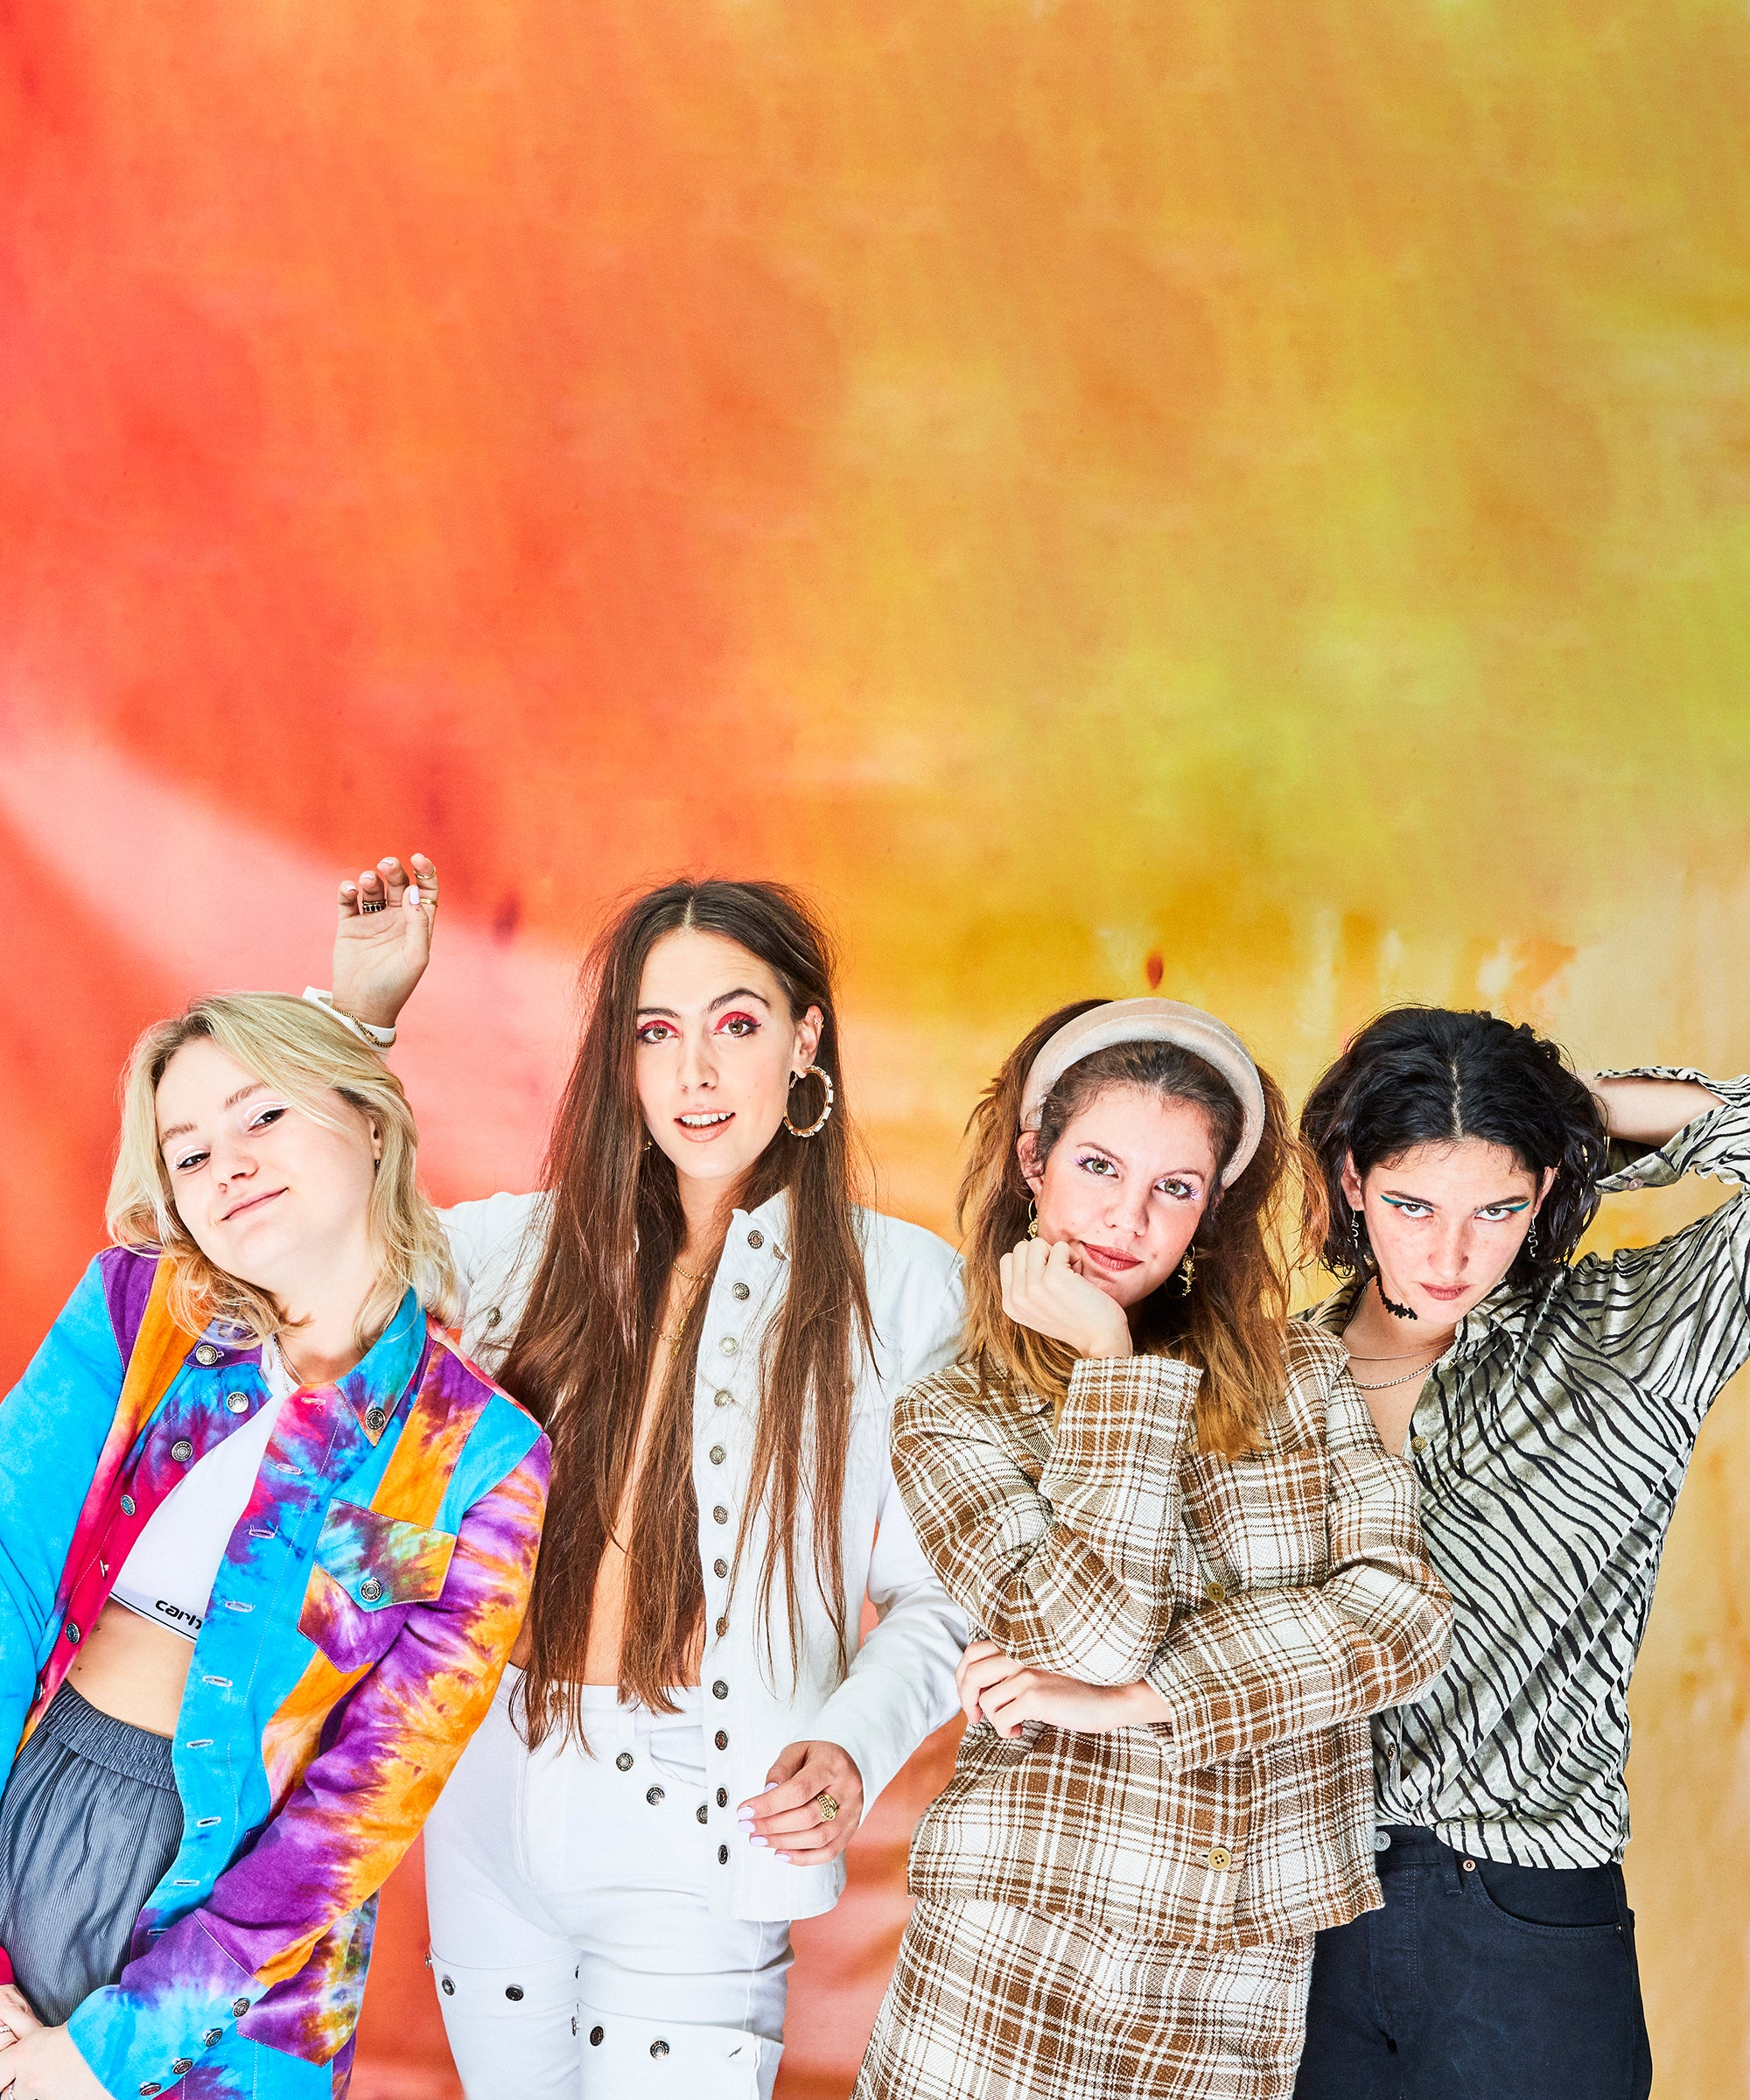 New Music To Know This Week: Hinds & Kali Uchis Make Huge Returns With New Songs — & More